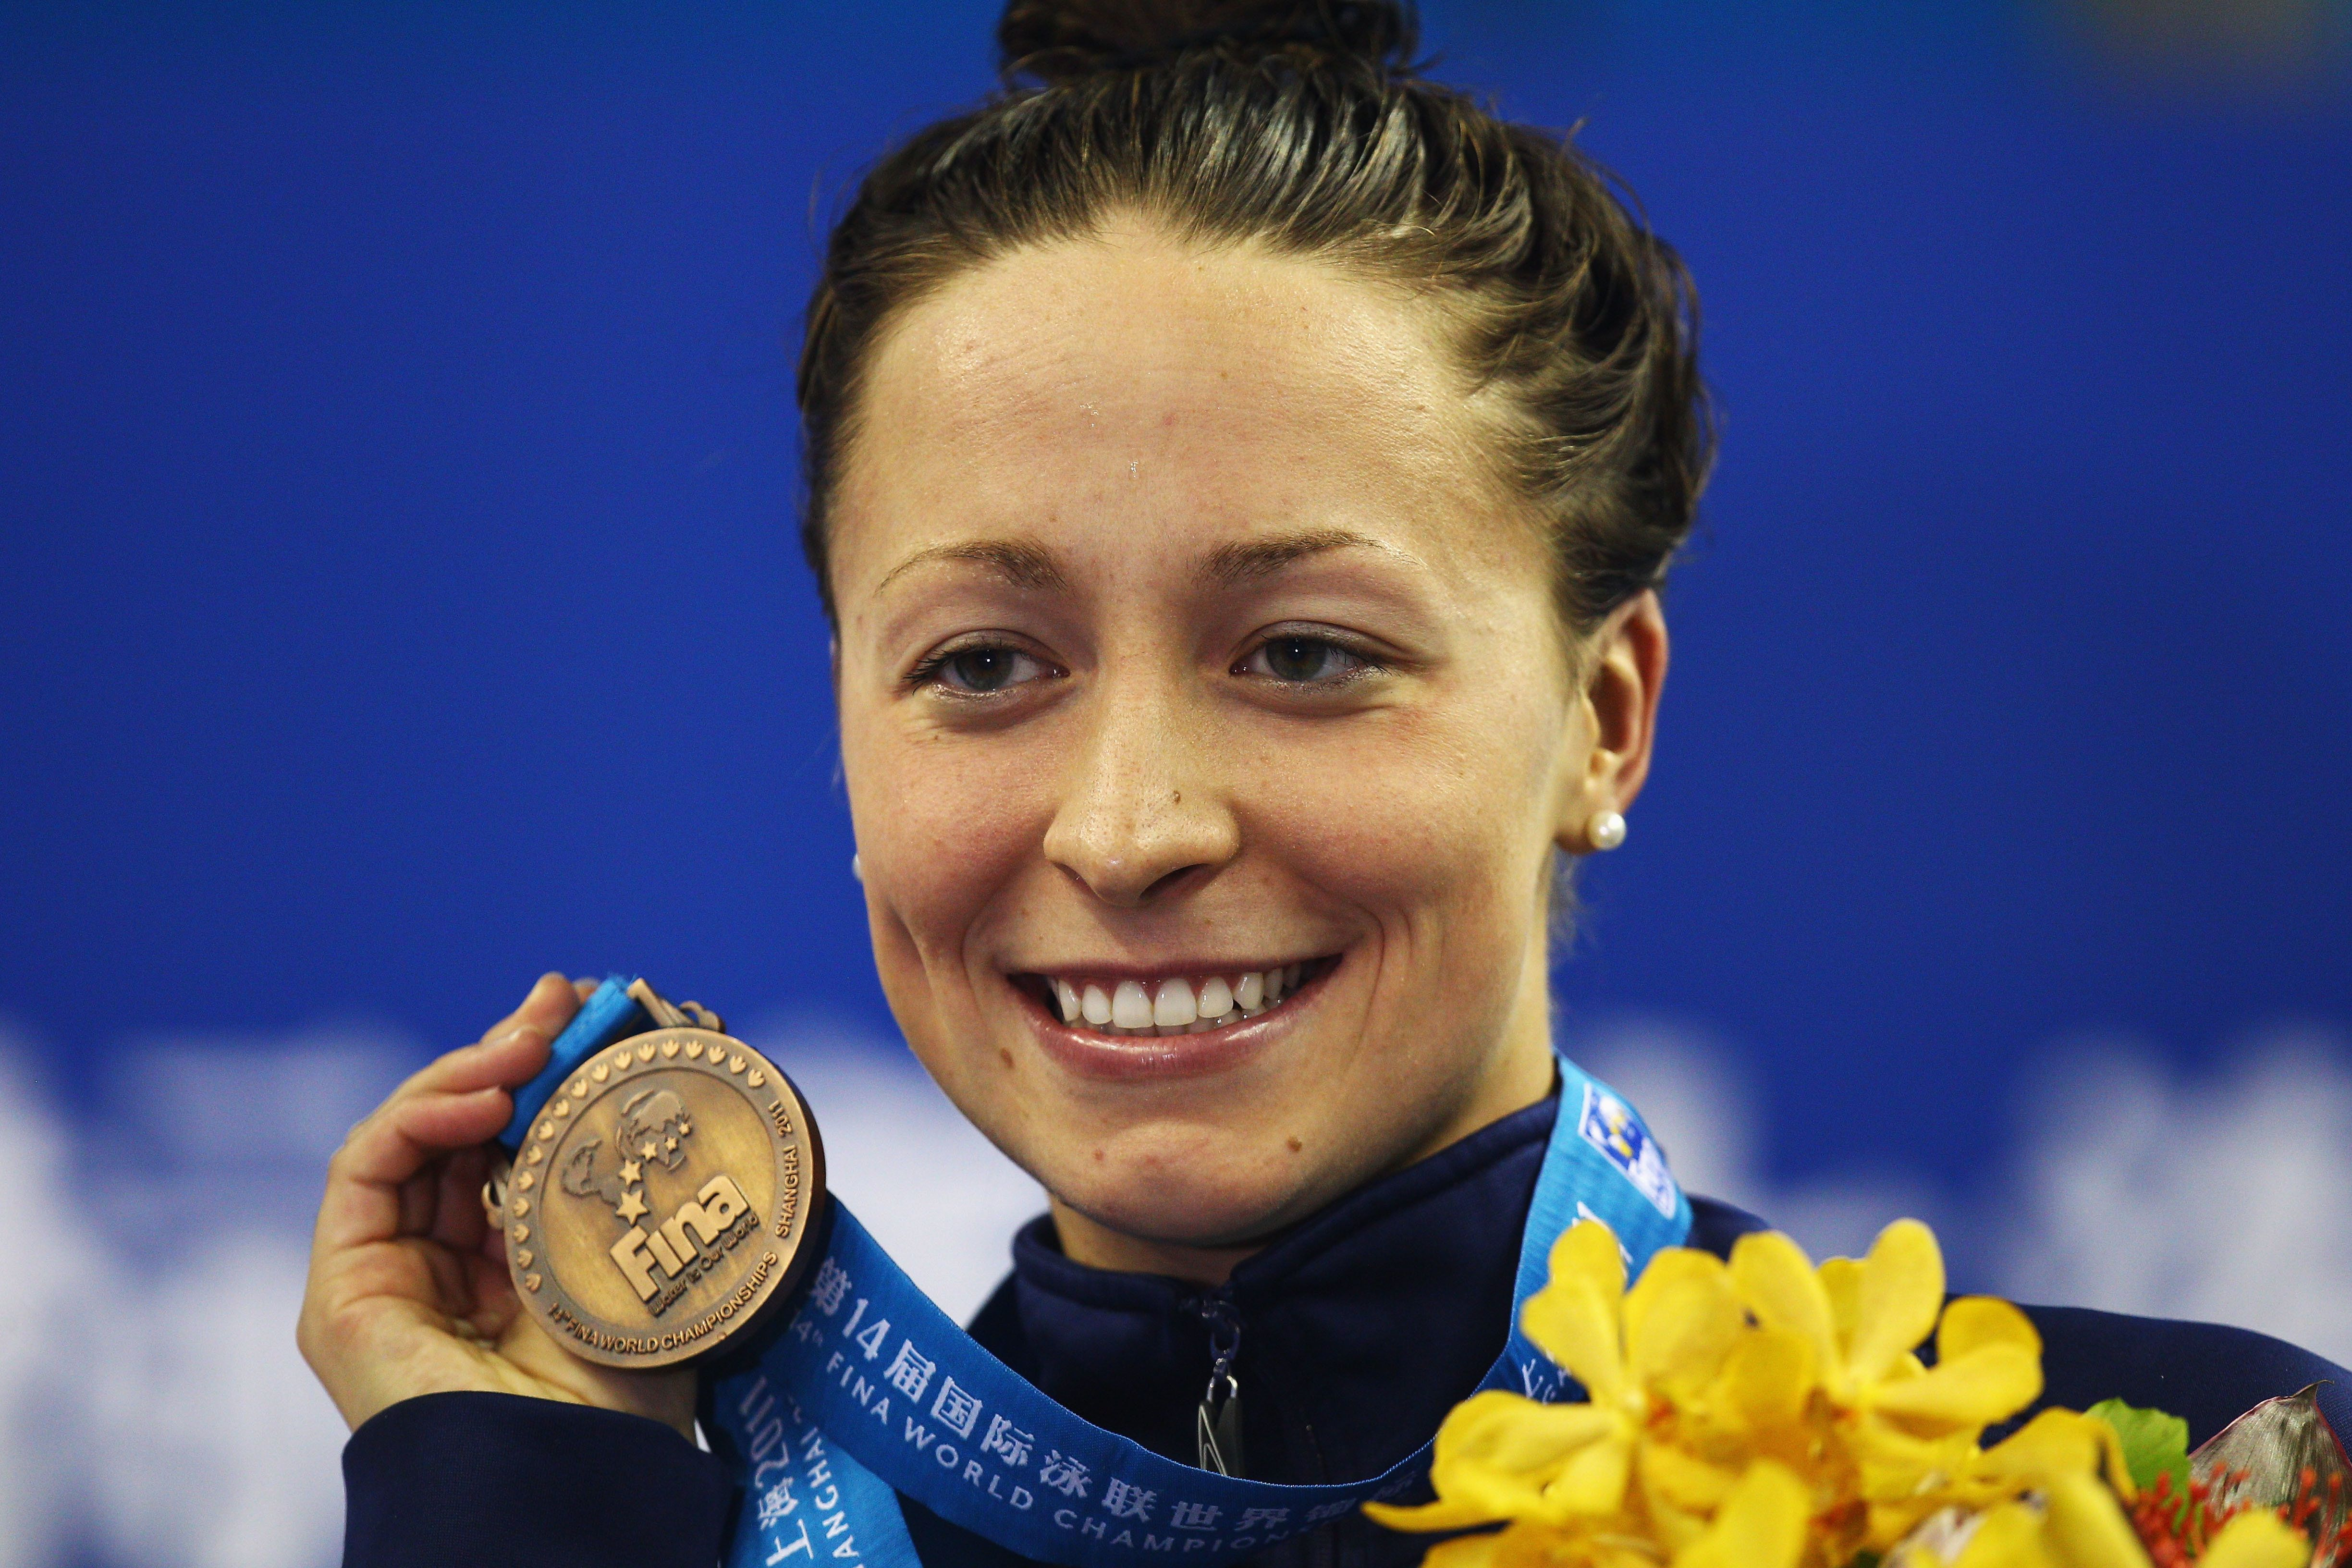 Ariana Kukors holds up her bronze medal for the women's 200-meter individual medley final during the 14th FINA World Champion